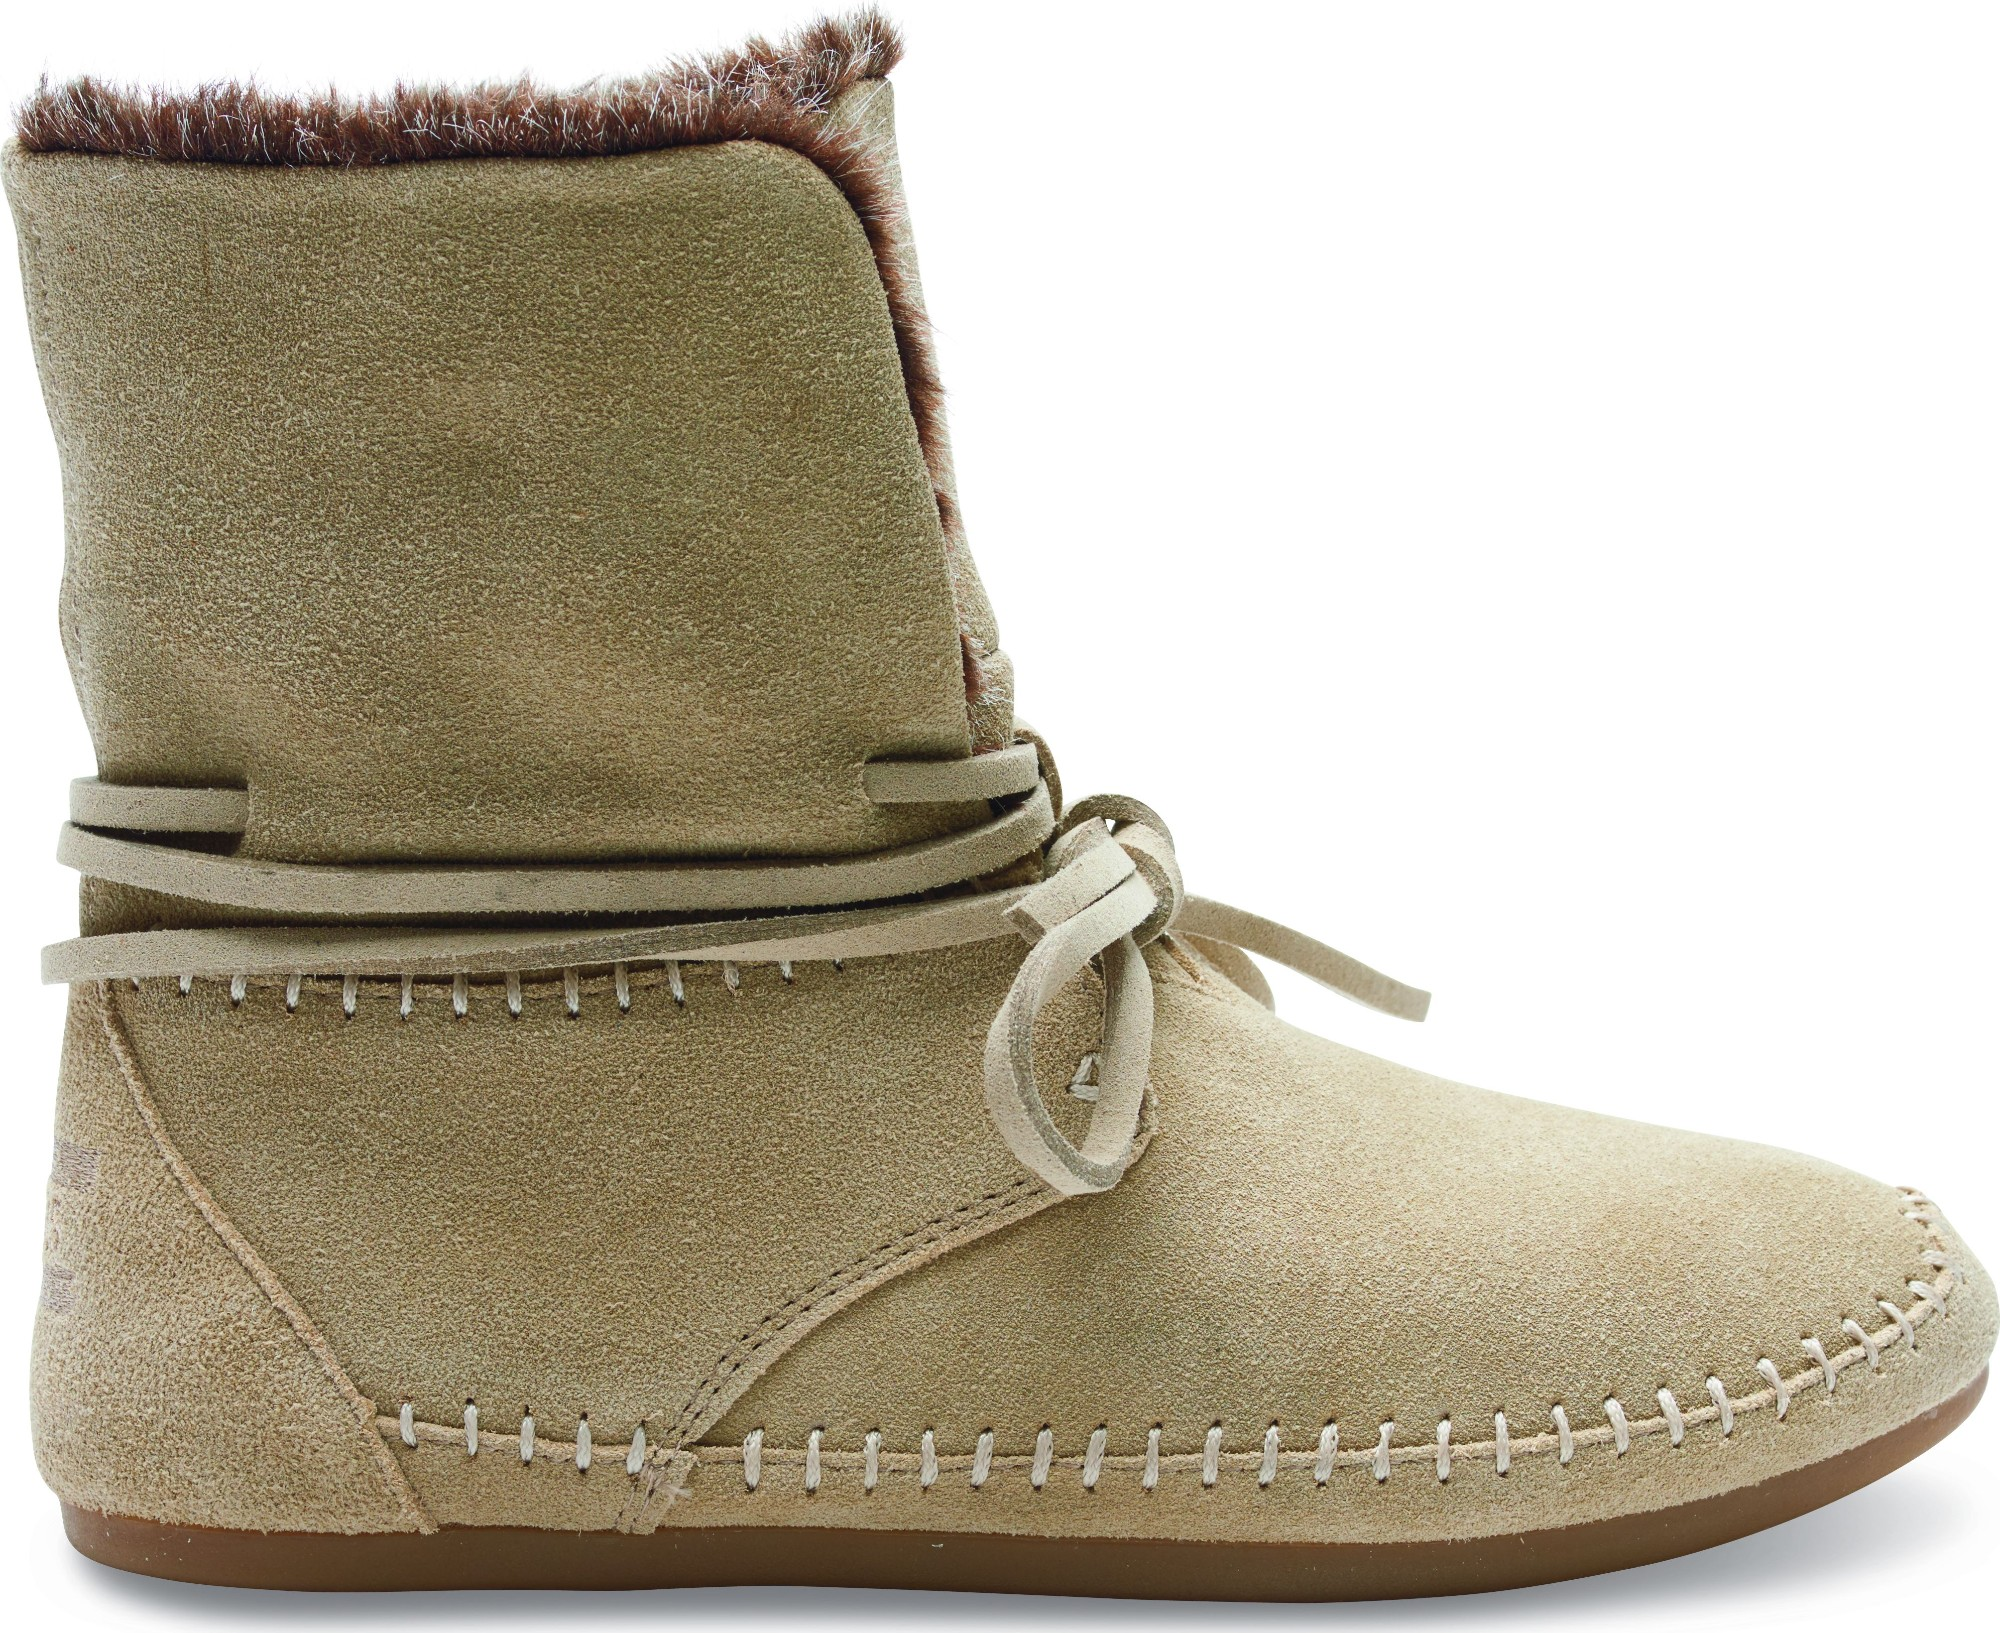 TOMS Suede Faux Hair Women's Zahara Bootie Oxford Tan 37